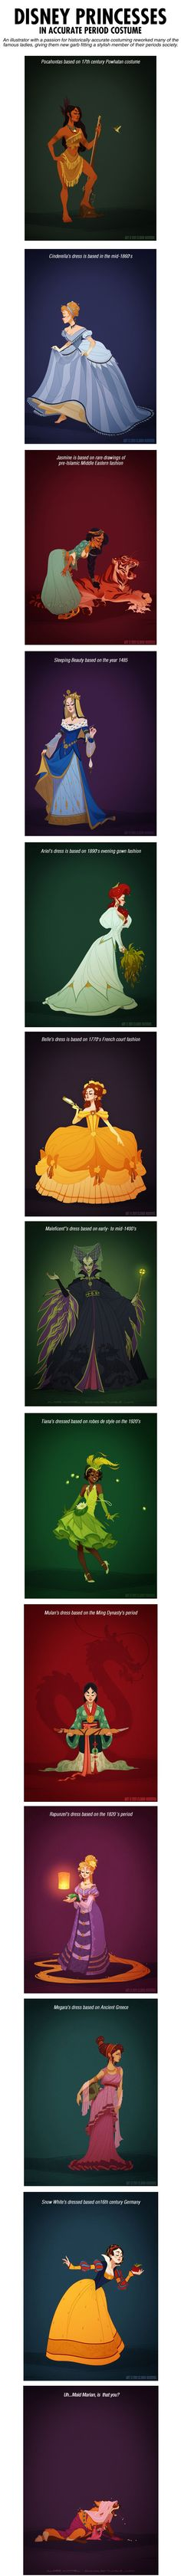 What If Disney Princesses Wore Historically Accurate Outfits? -   Misc